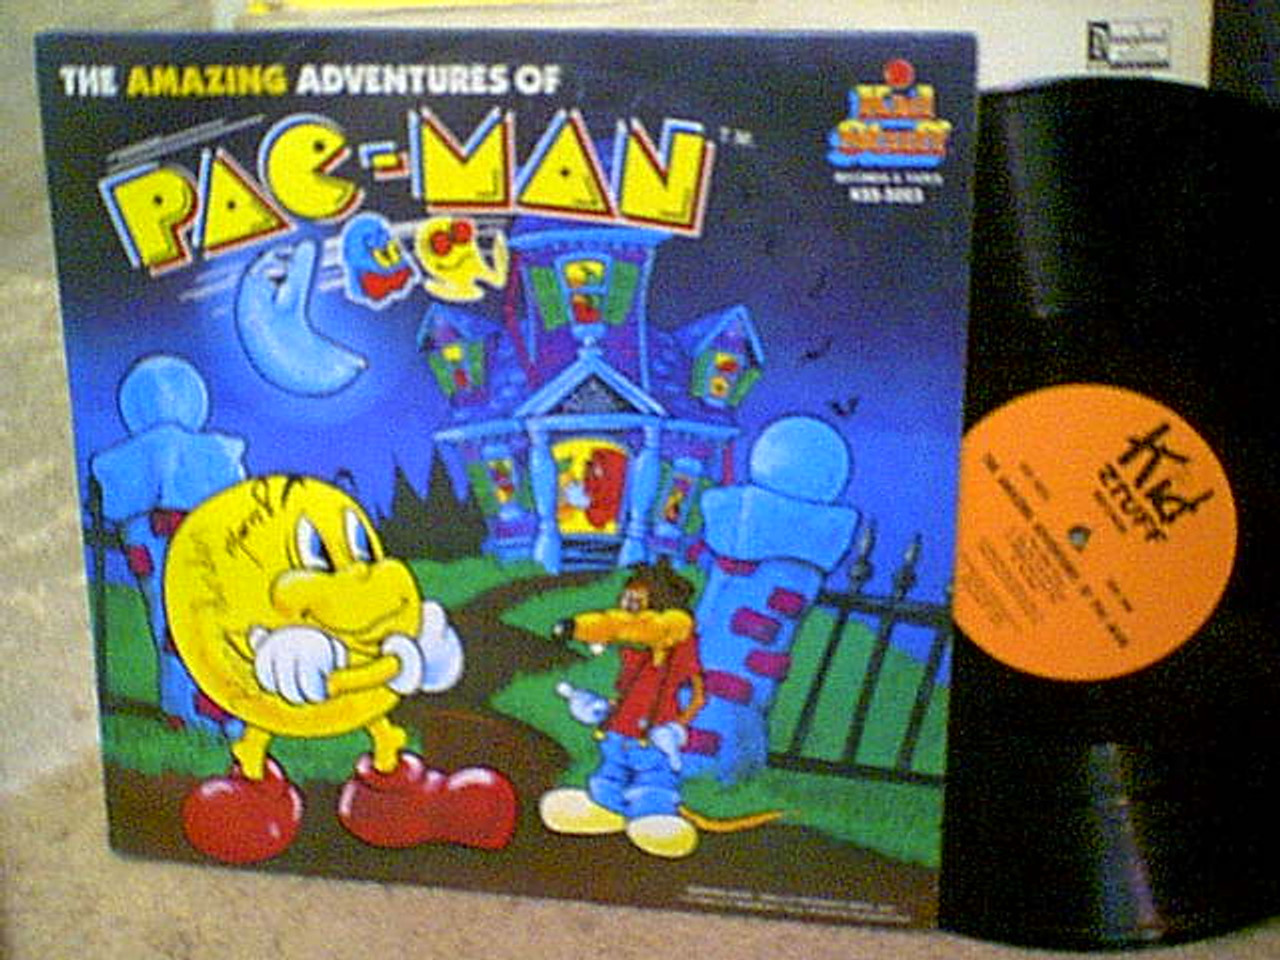 Pac Man LP Gordon, Barry Marty Ingels Signed Autograph The Amazing Adventures Of Pac Man 1980